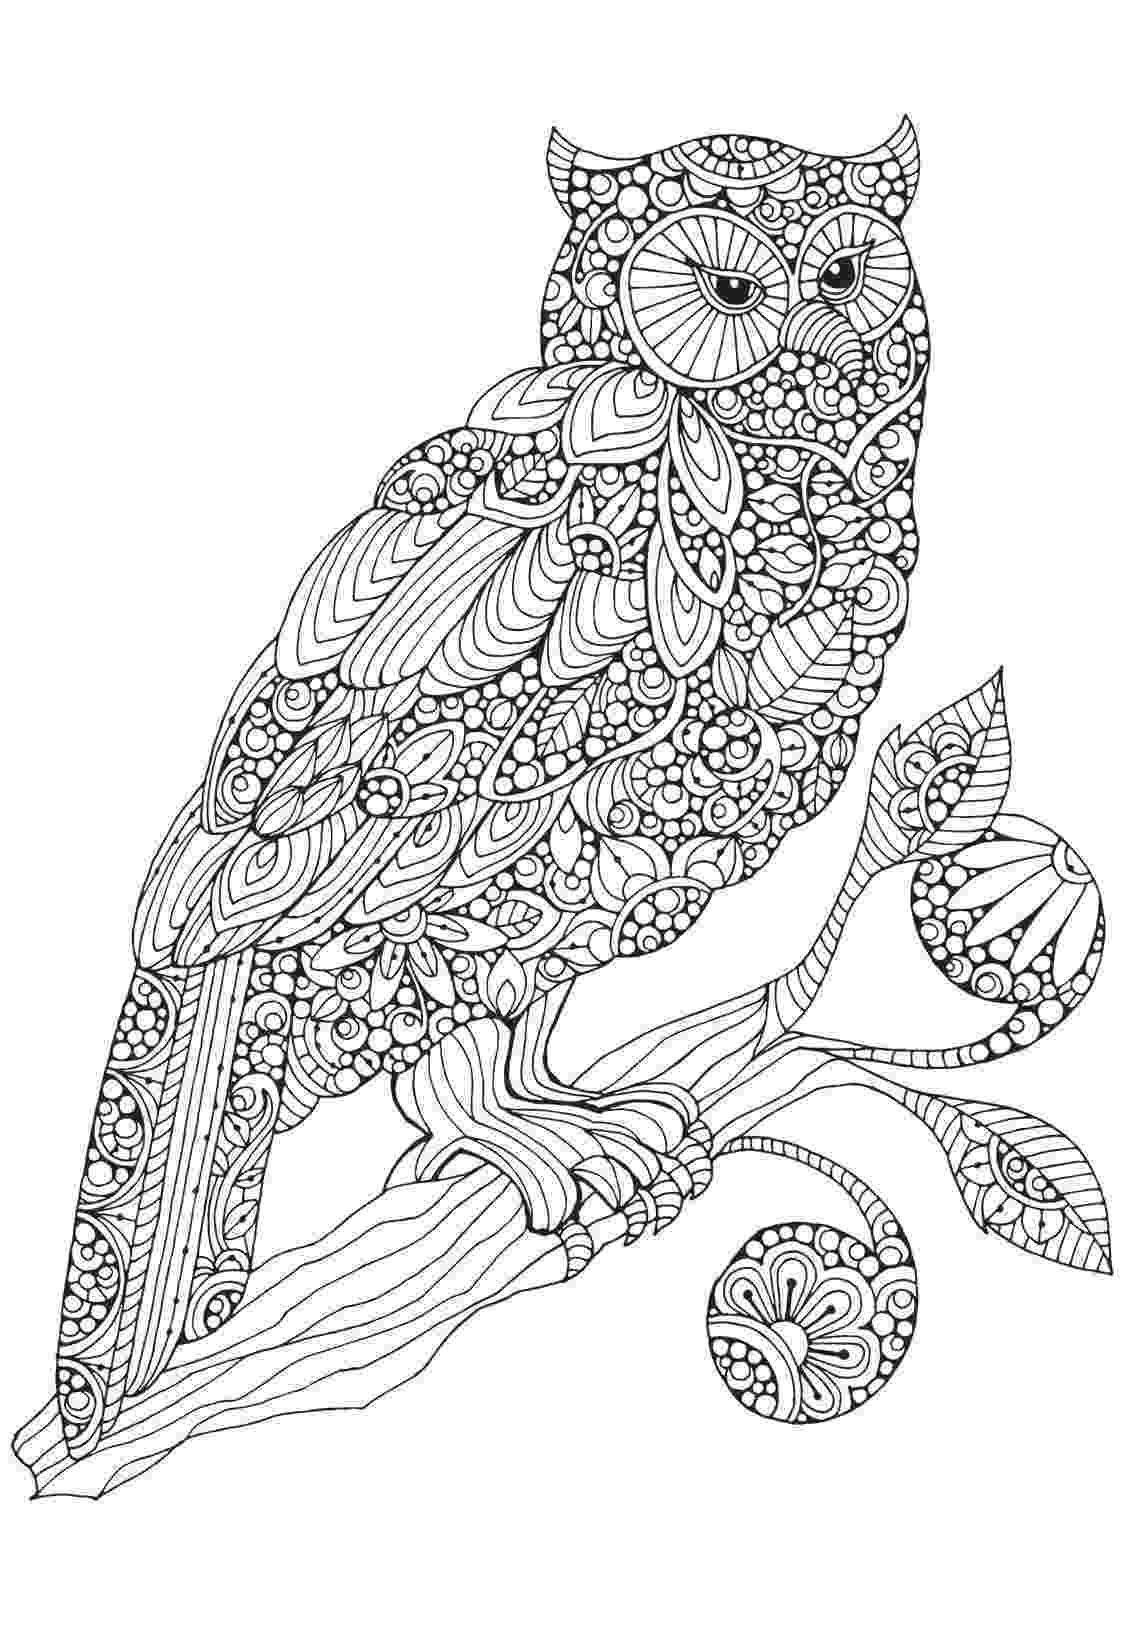 colouring pages adults why adults are turning to colouring in books to relax adults colouring pages